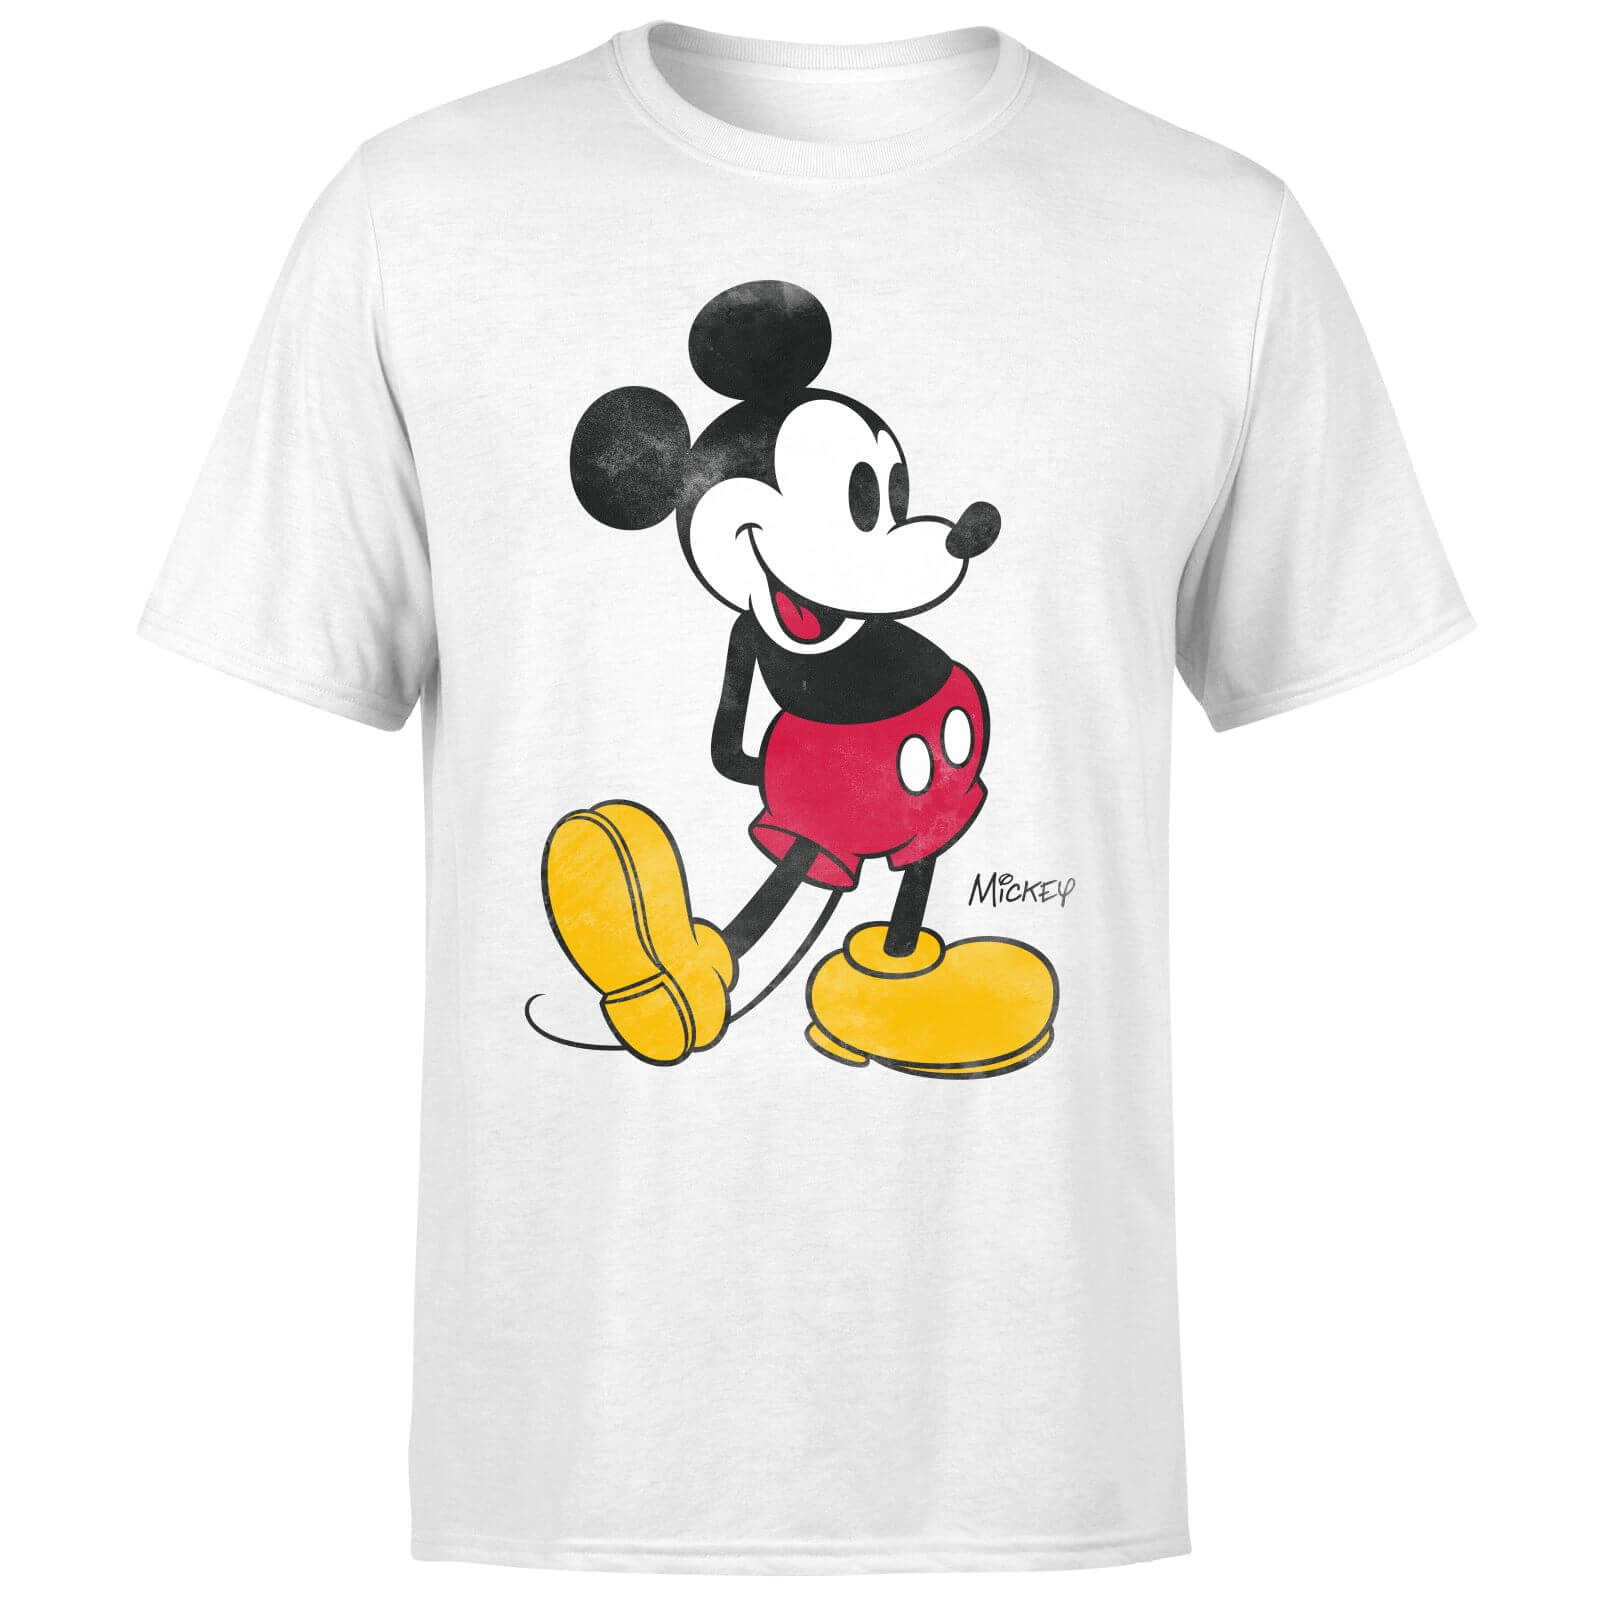 Disney Mickey Mouse Classic Kick T-Shirt - White